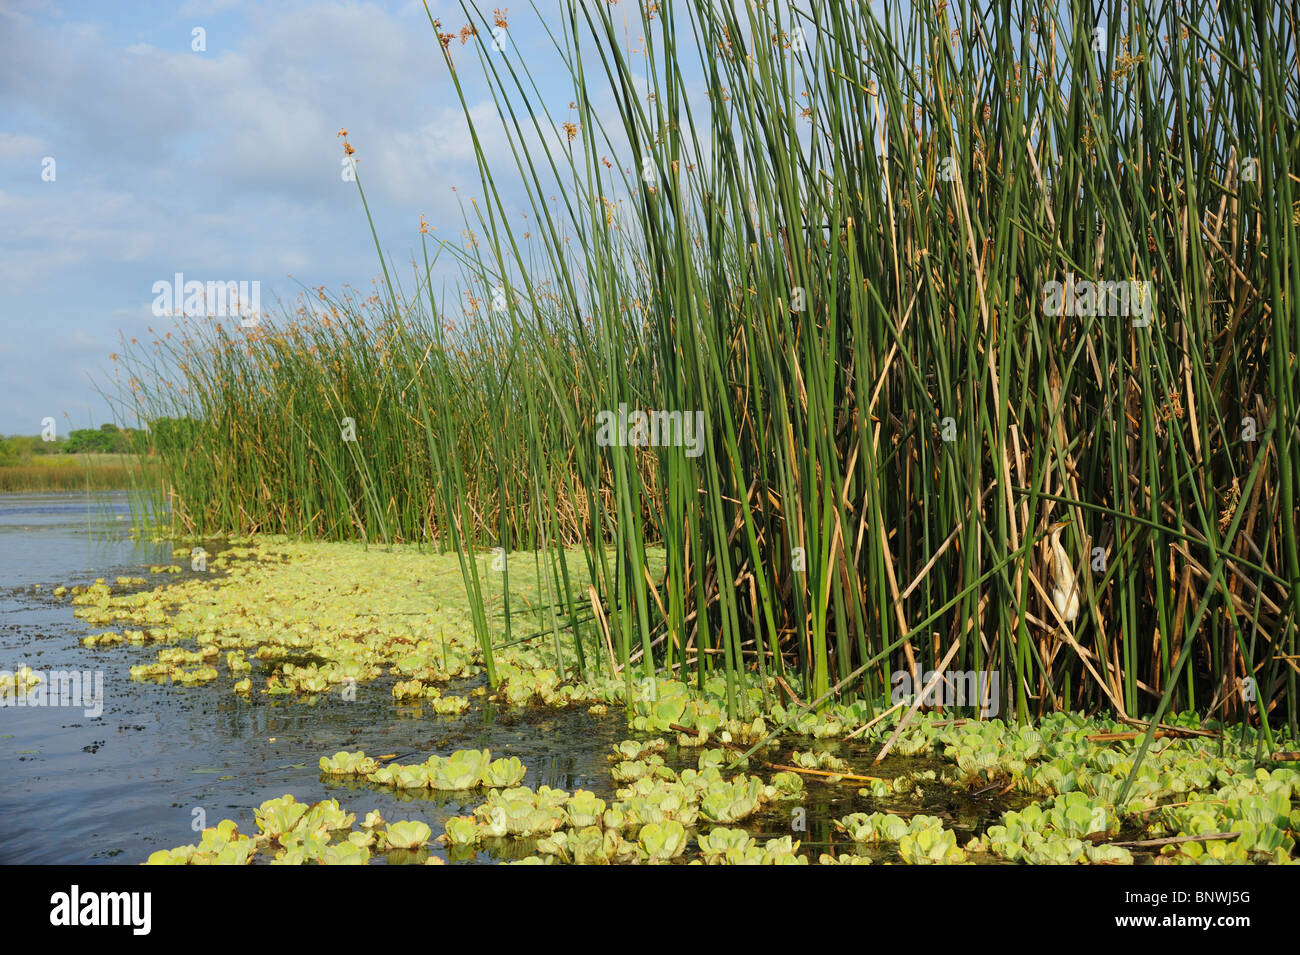 Least Bittern (Ixobrychus exilis), adult in reeds in lake habitat, Fennessey Ranch, Refugio, Coastal Bend, Texas - Stock Image